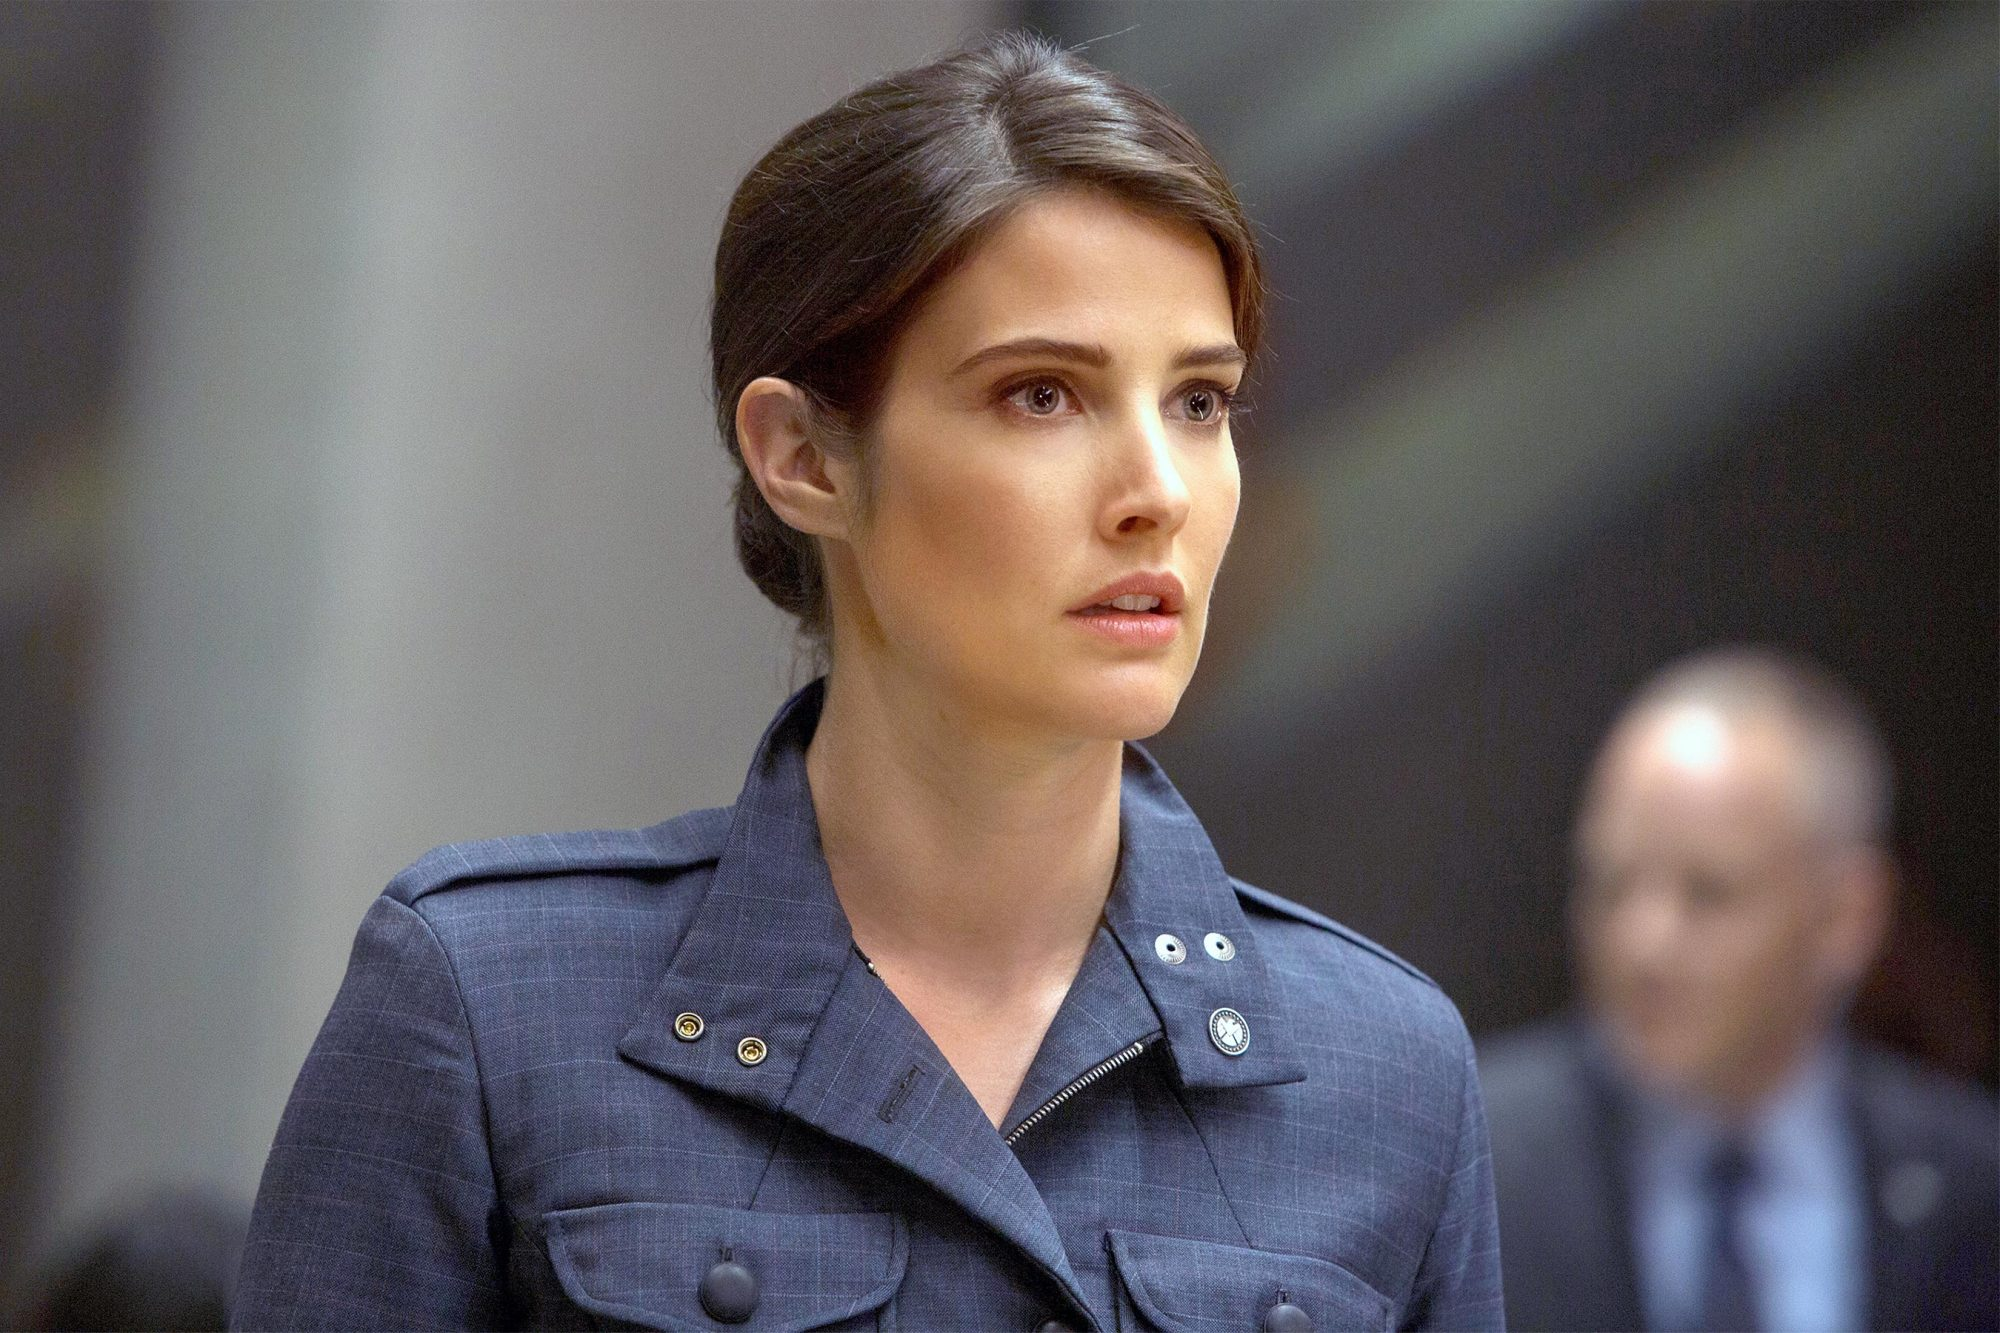 Captain America: The Winter Soldier (2014)Maria Hill (Cobie Smulders)